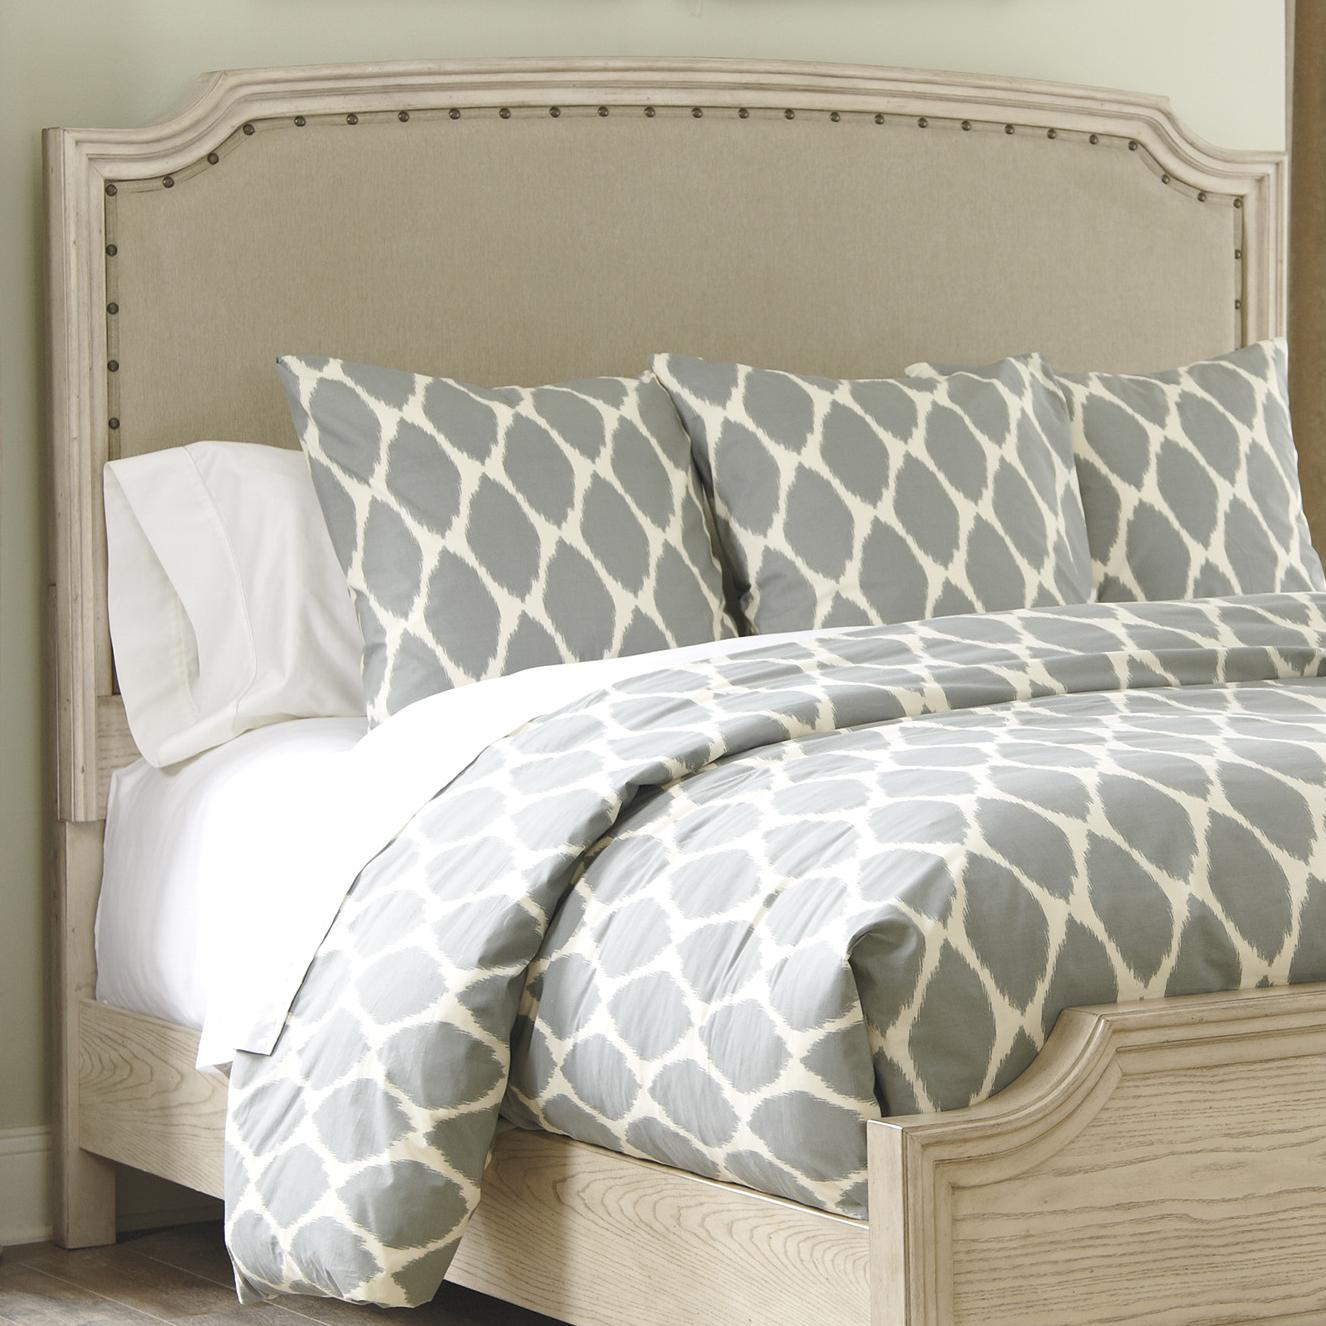 Signature Design by Ashley Demarlos King/Cal King Upholstered Panel Headboard - Item Number: B693-78